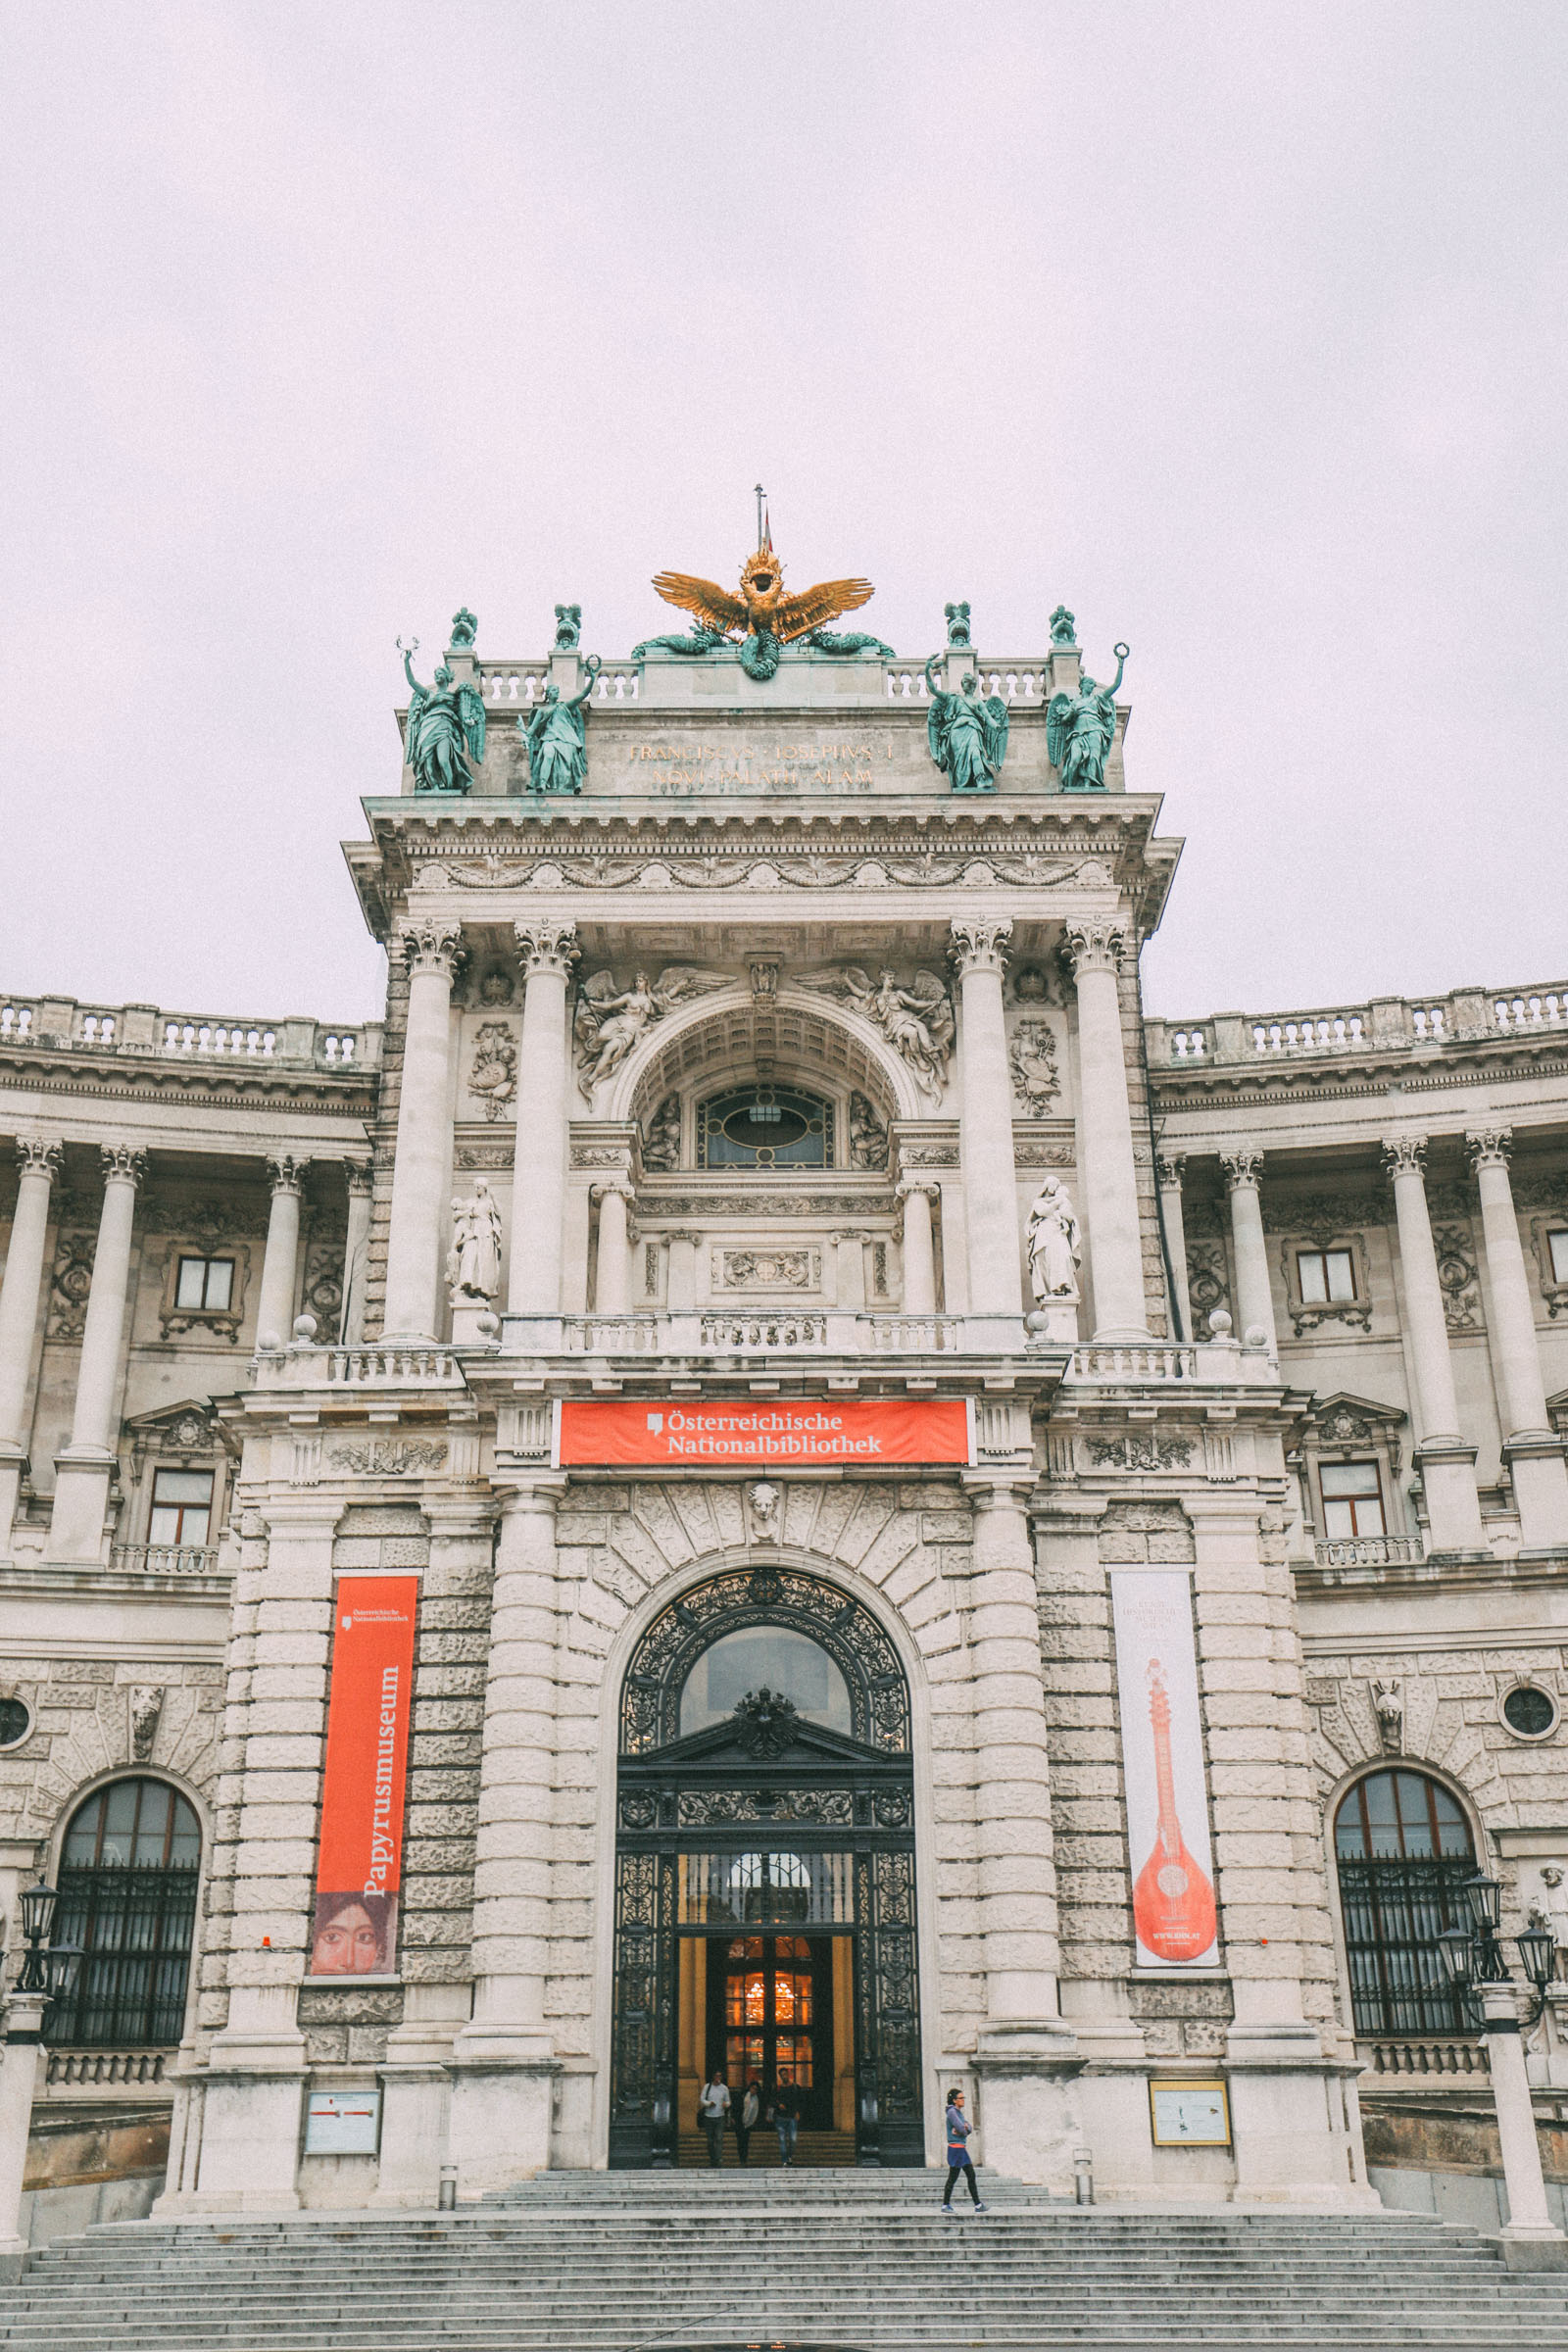 The Authentic Sights, Sounds And Tastes Of Vienna, Austria (35)